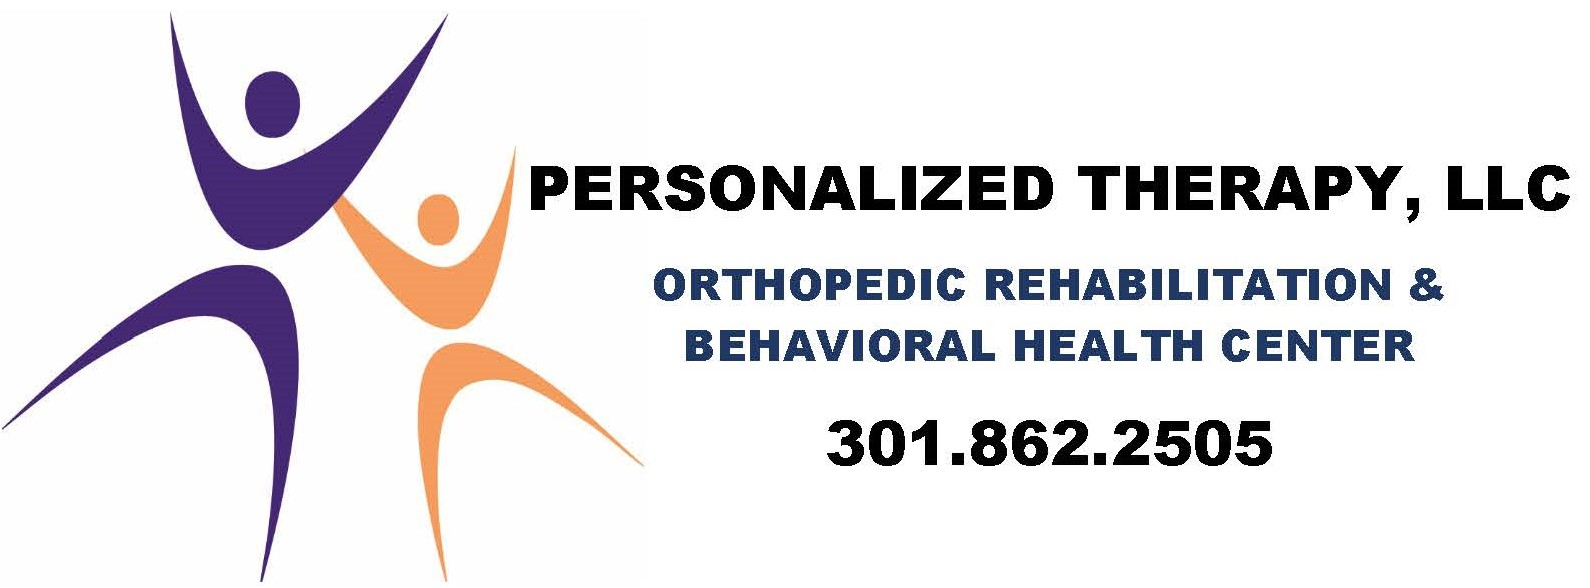 Personalized Therapy Inc.